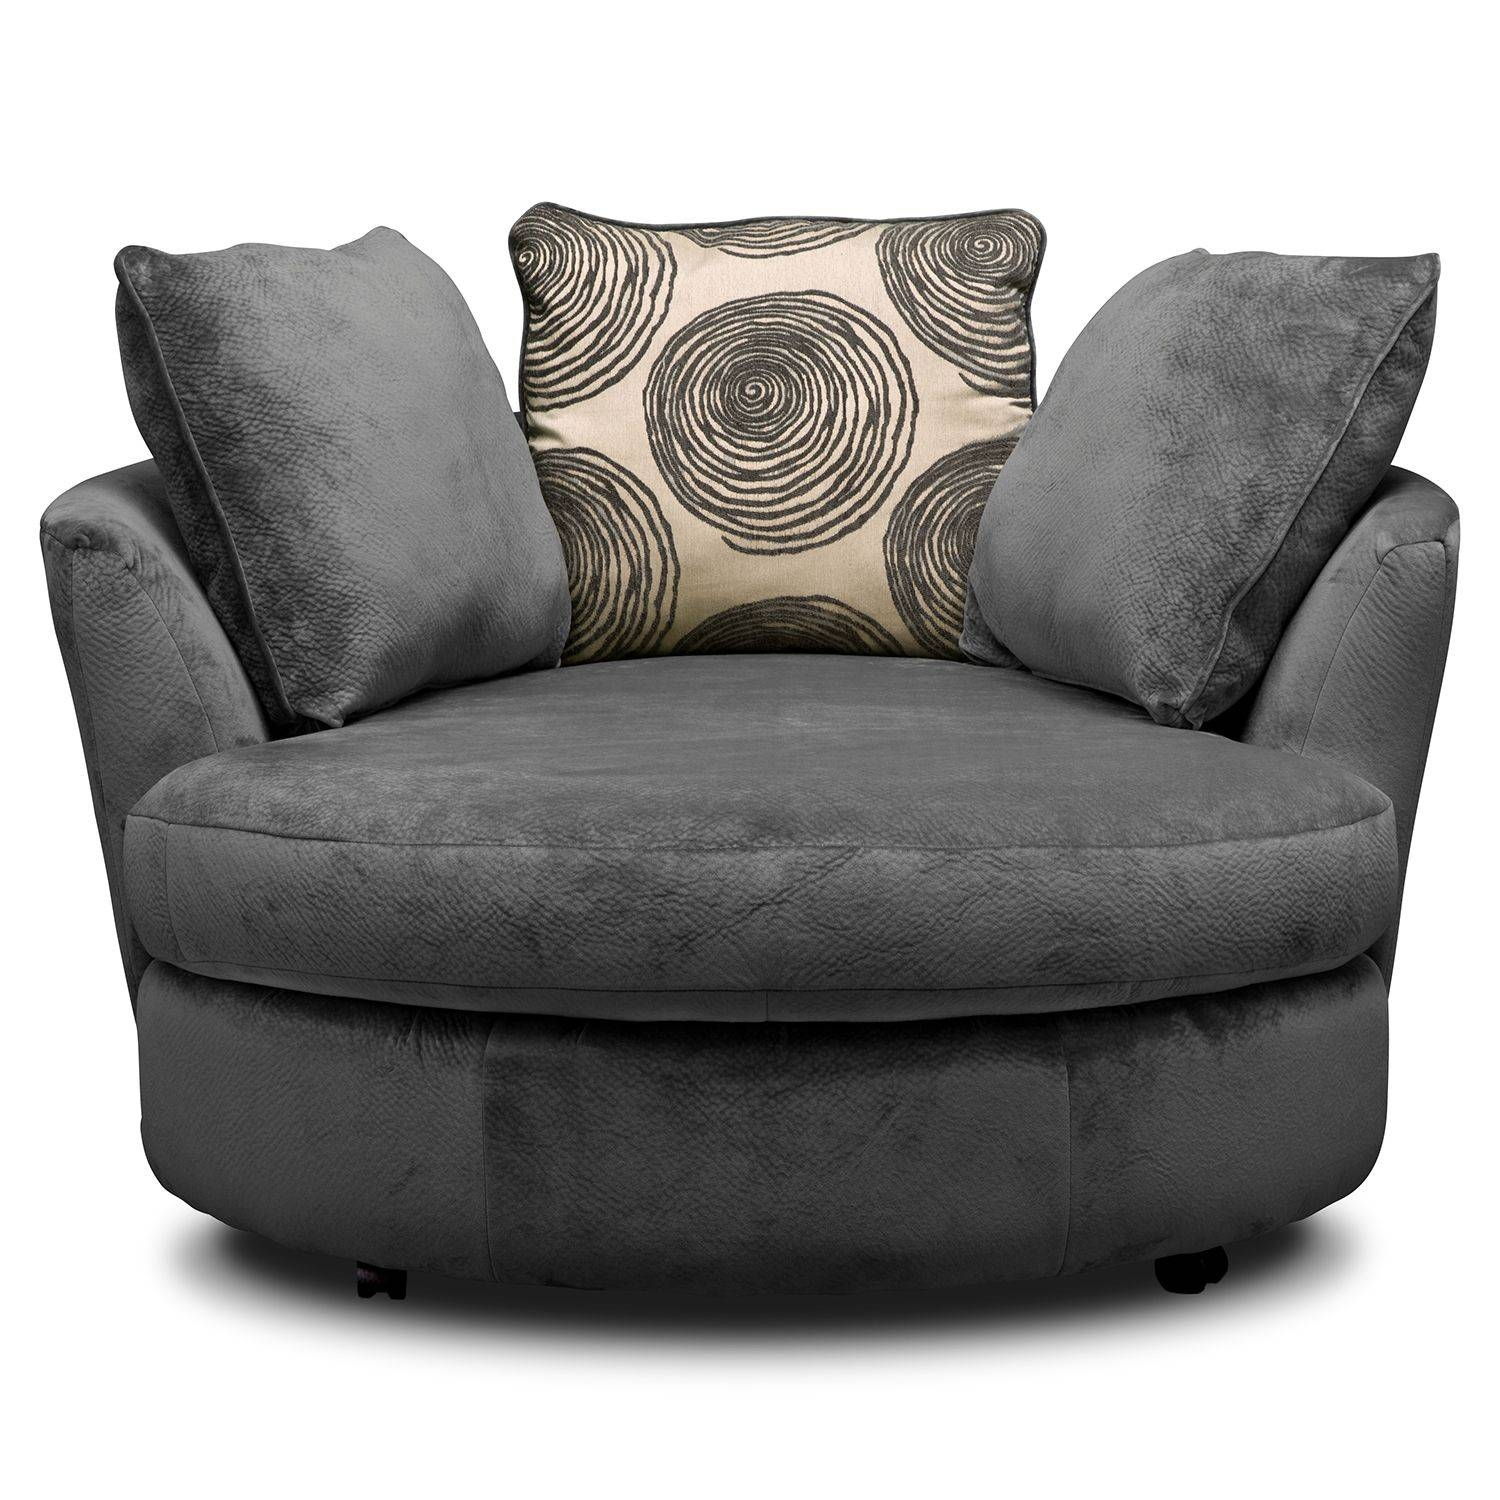 Sofas Center : Shocking Round Sofa Chair Picture Concept Modern In throughout Large Sofa Chairs (Image 25 of 30)